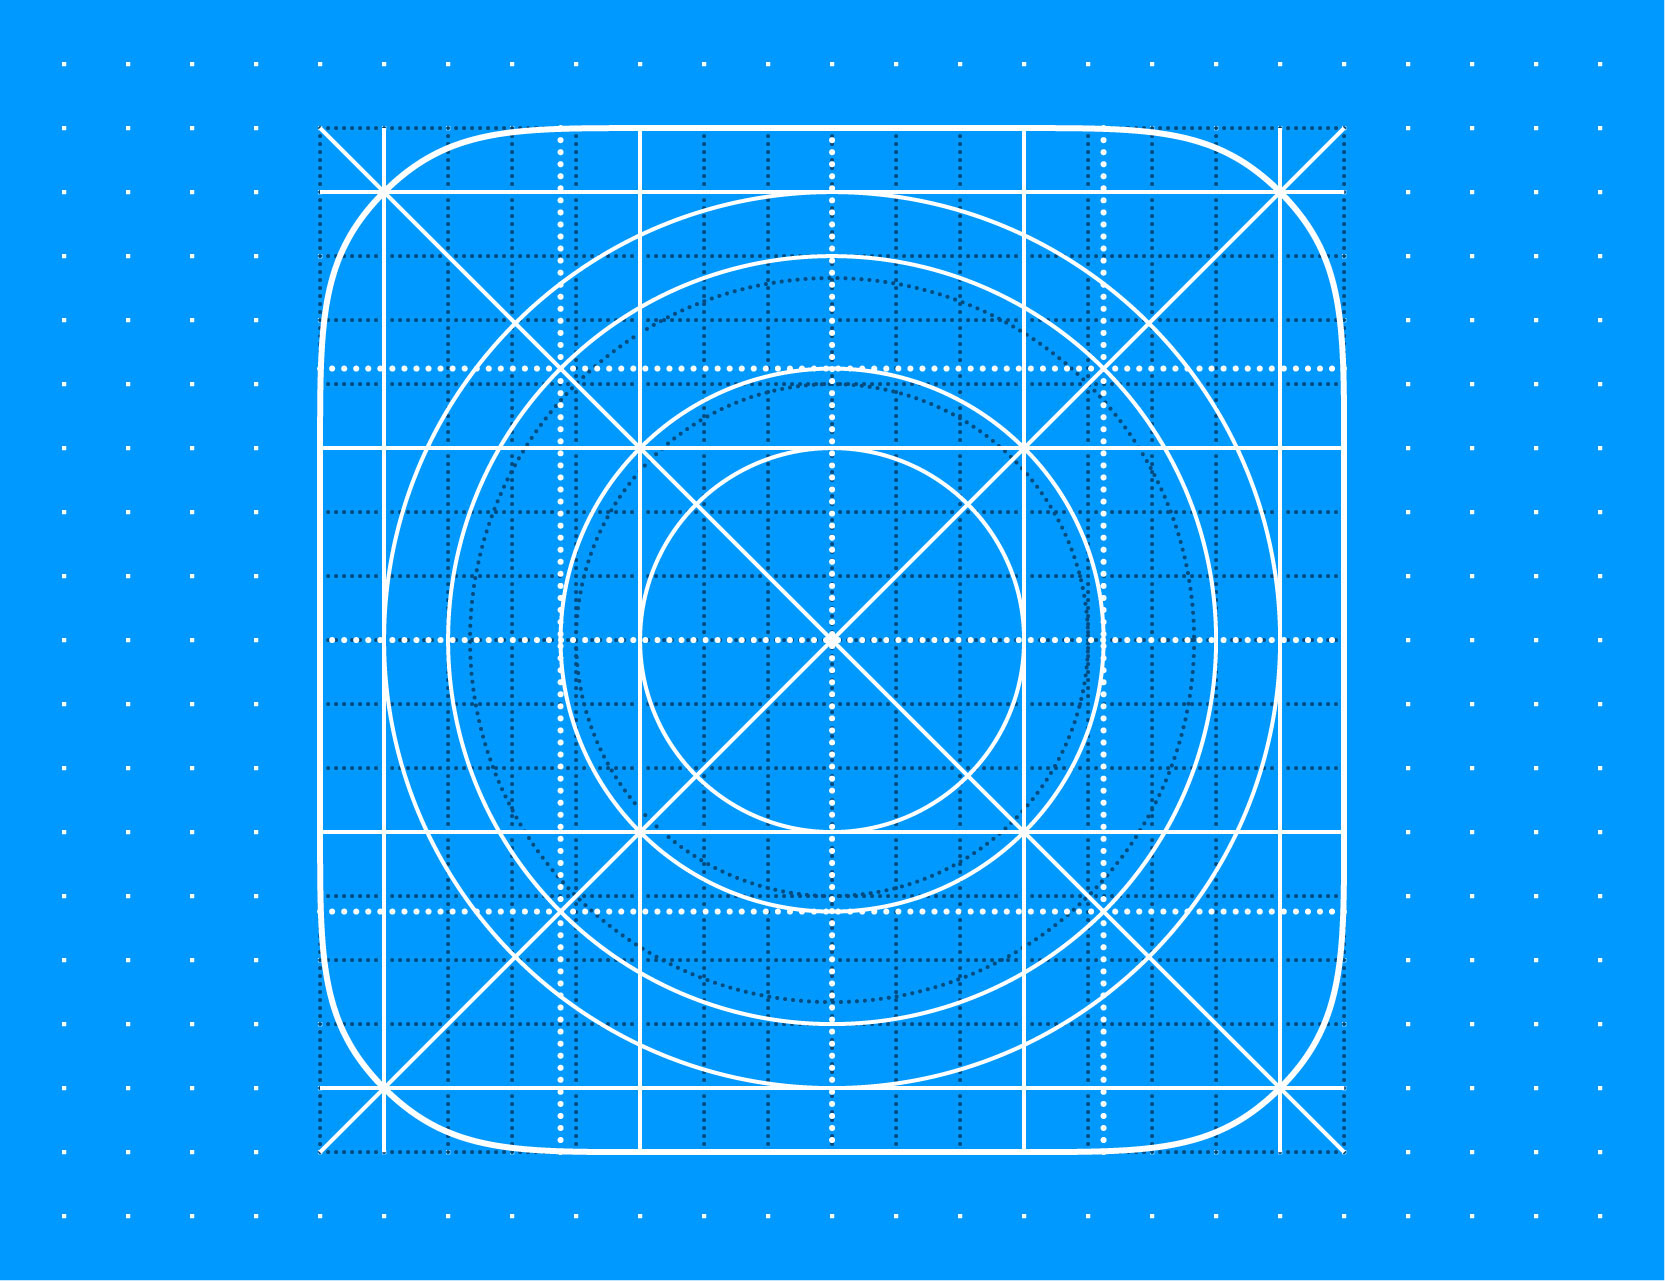 Free template ios 11 icon grid eps8 vector illustration on behance malvernweather Images